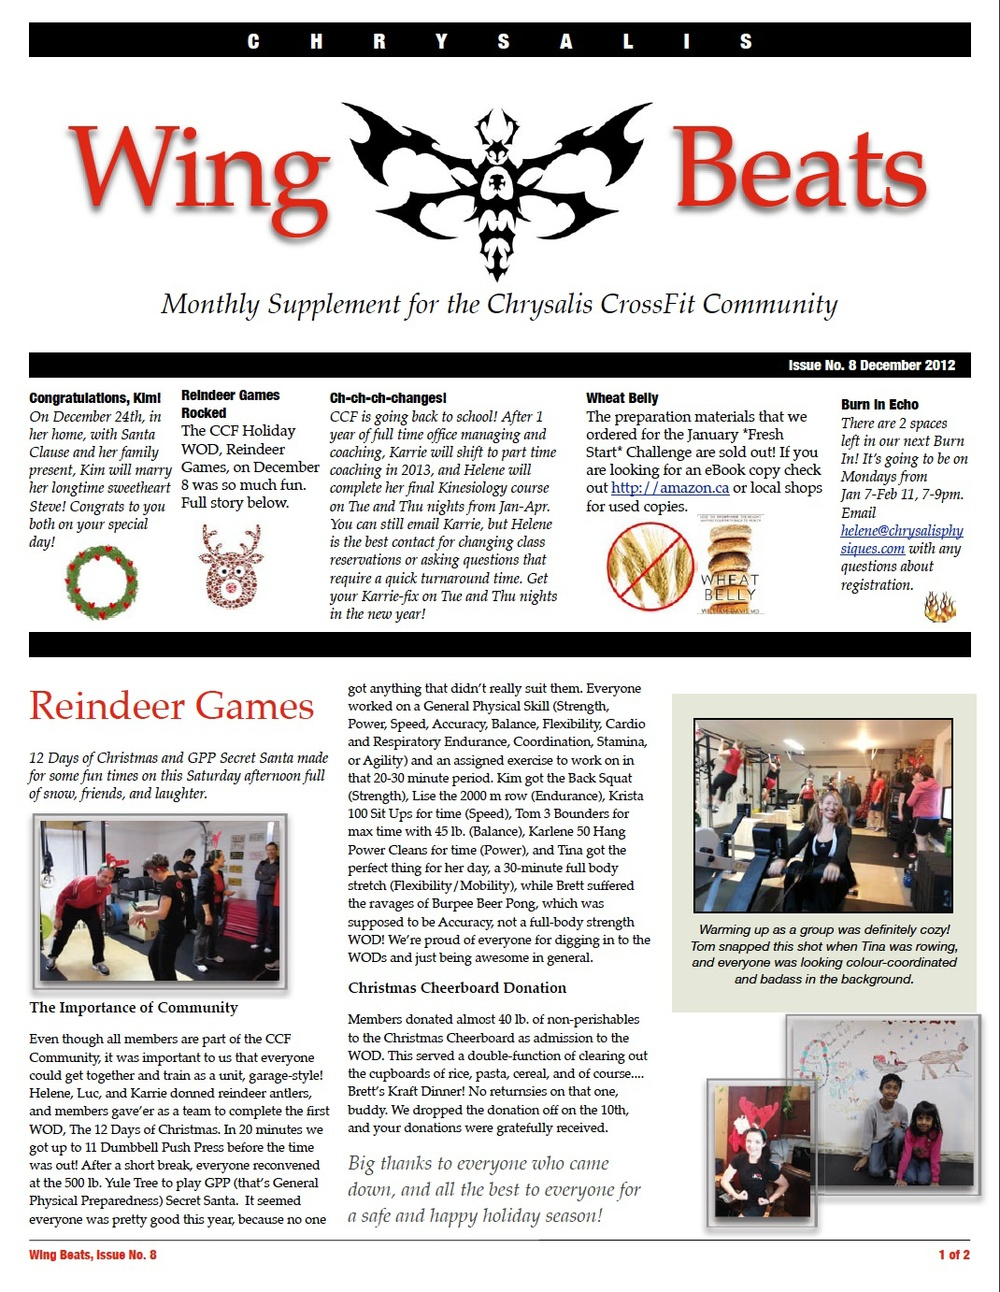 WingBeats Issue #8 - December 2012